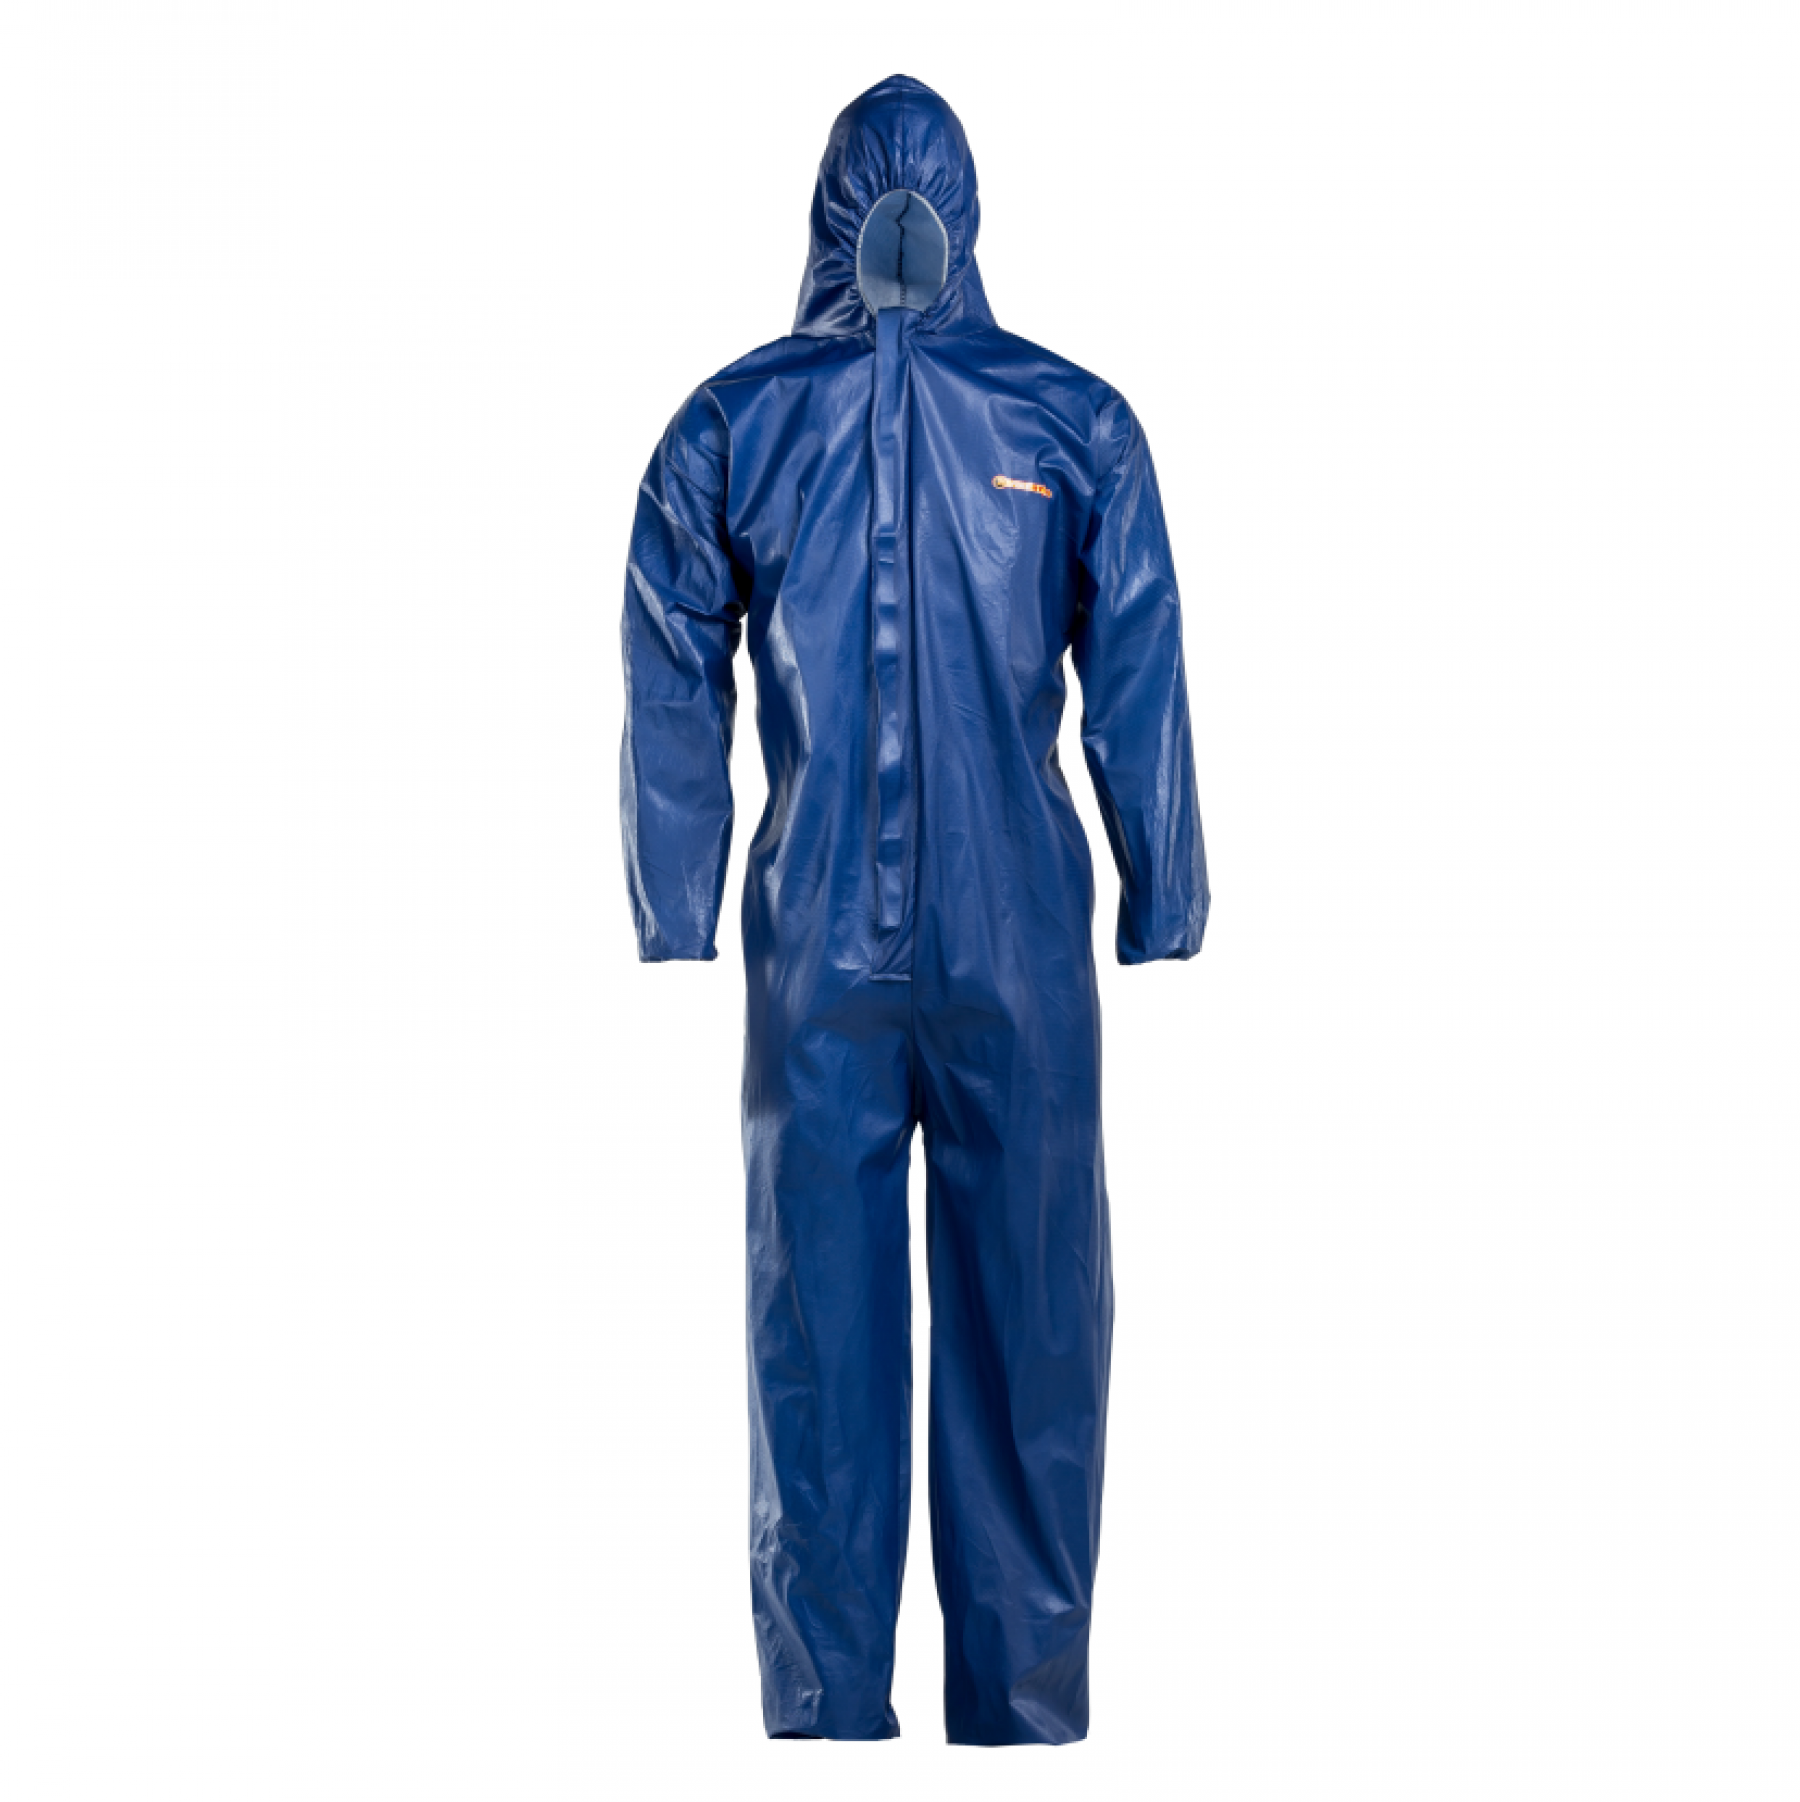 Firestar Flame Retardant Navy Blue Coverall, Size M